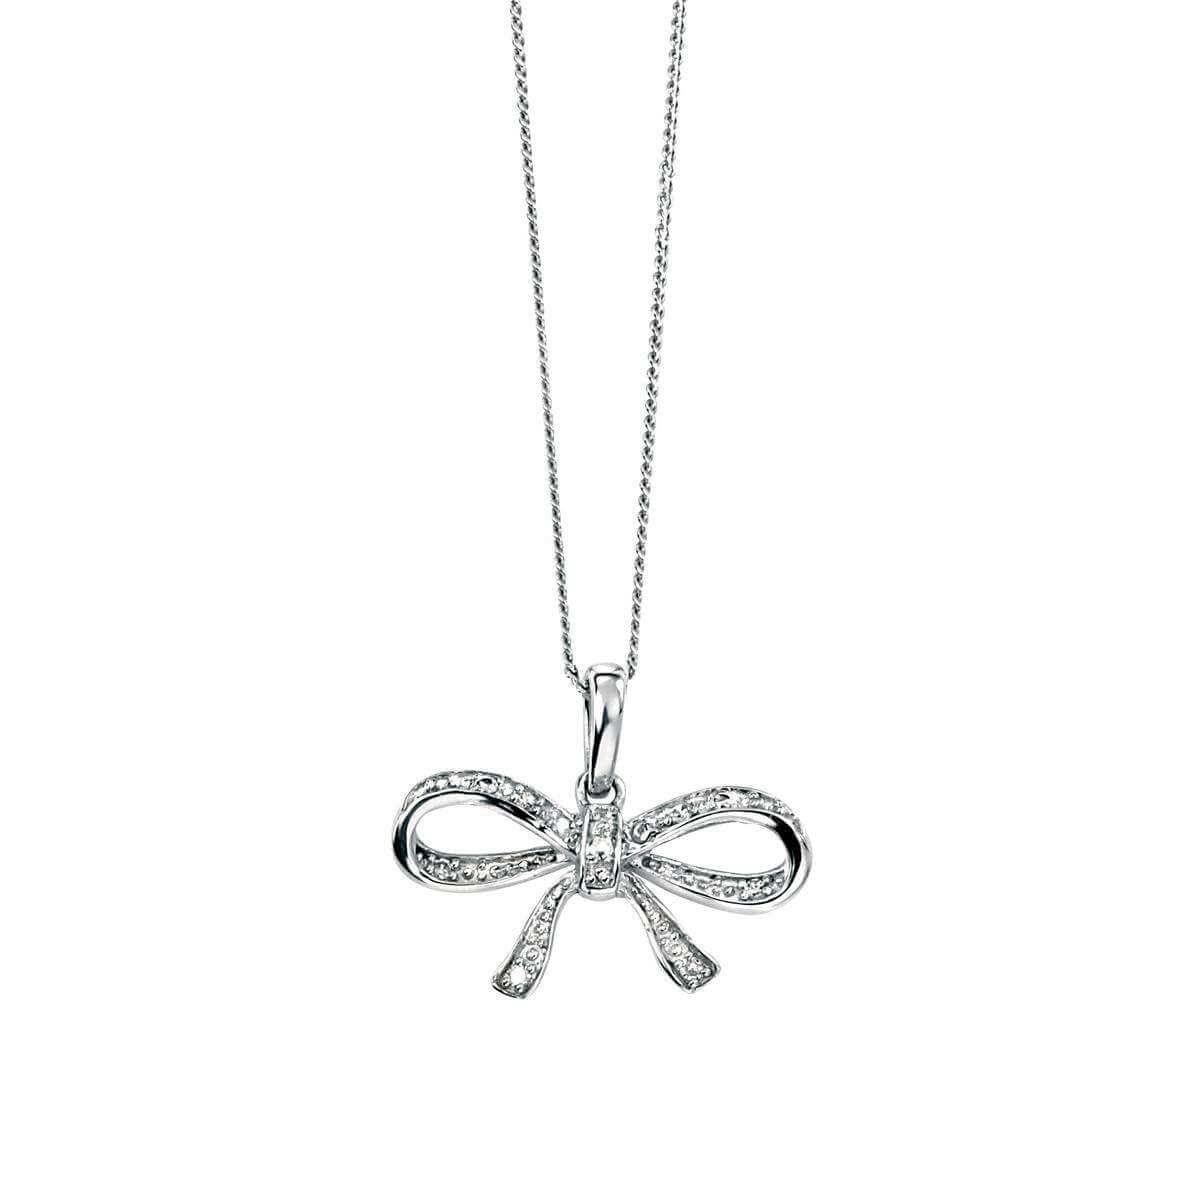 9ct White Gold and diamond Bow Necklace